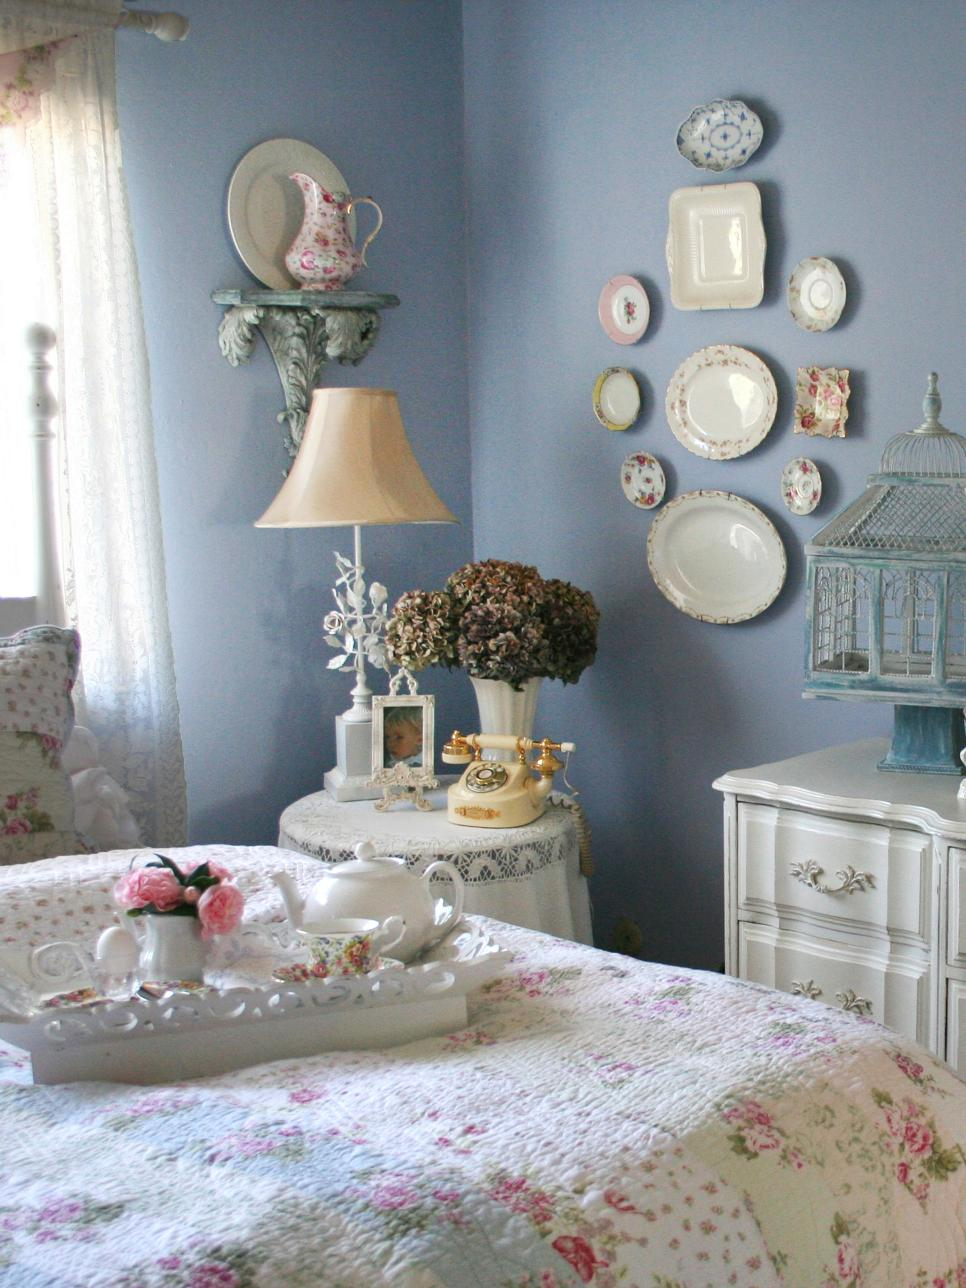 Shabby Style Embrace Your Inner Brit With Shabby Chic | Hgtv